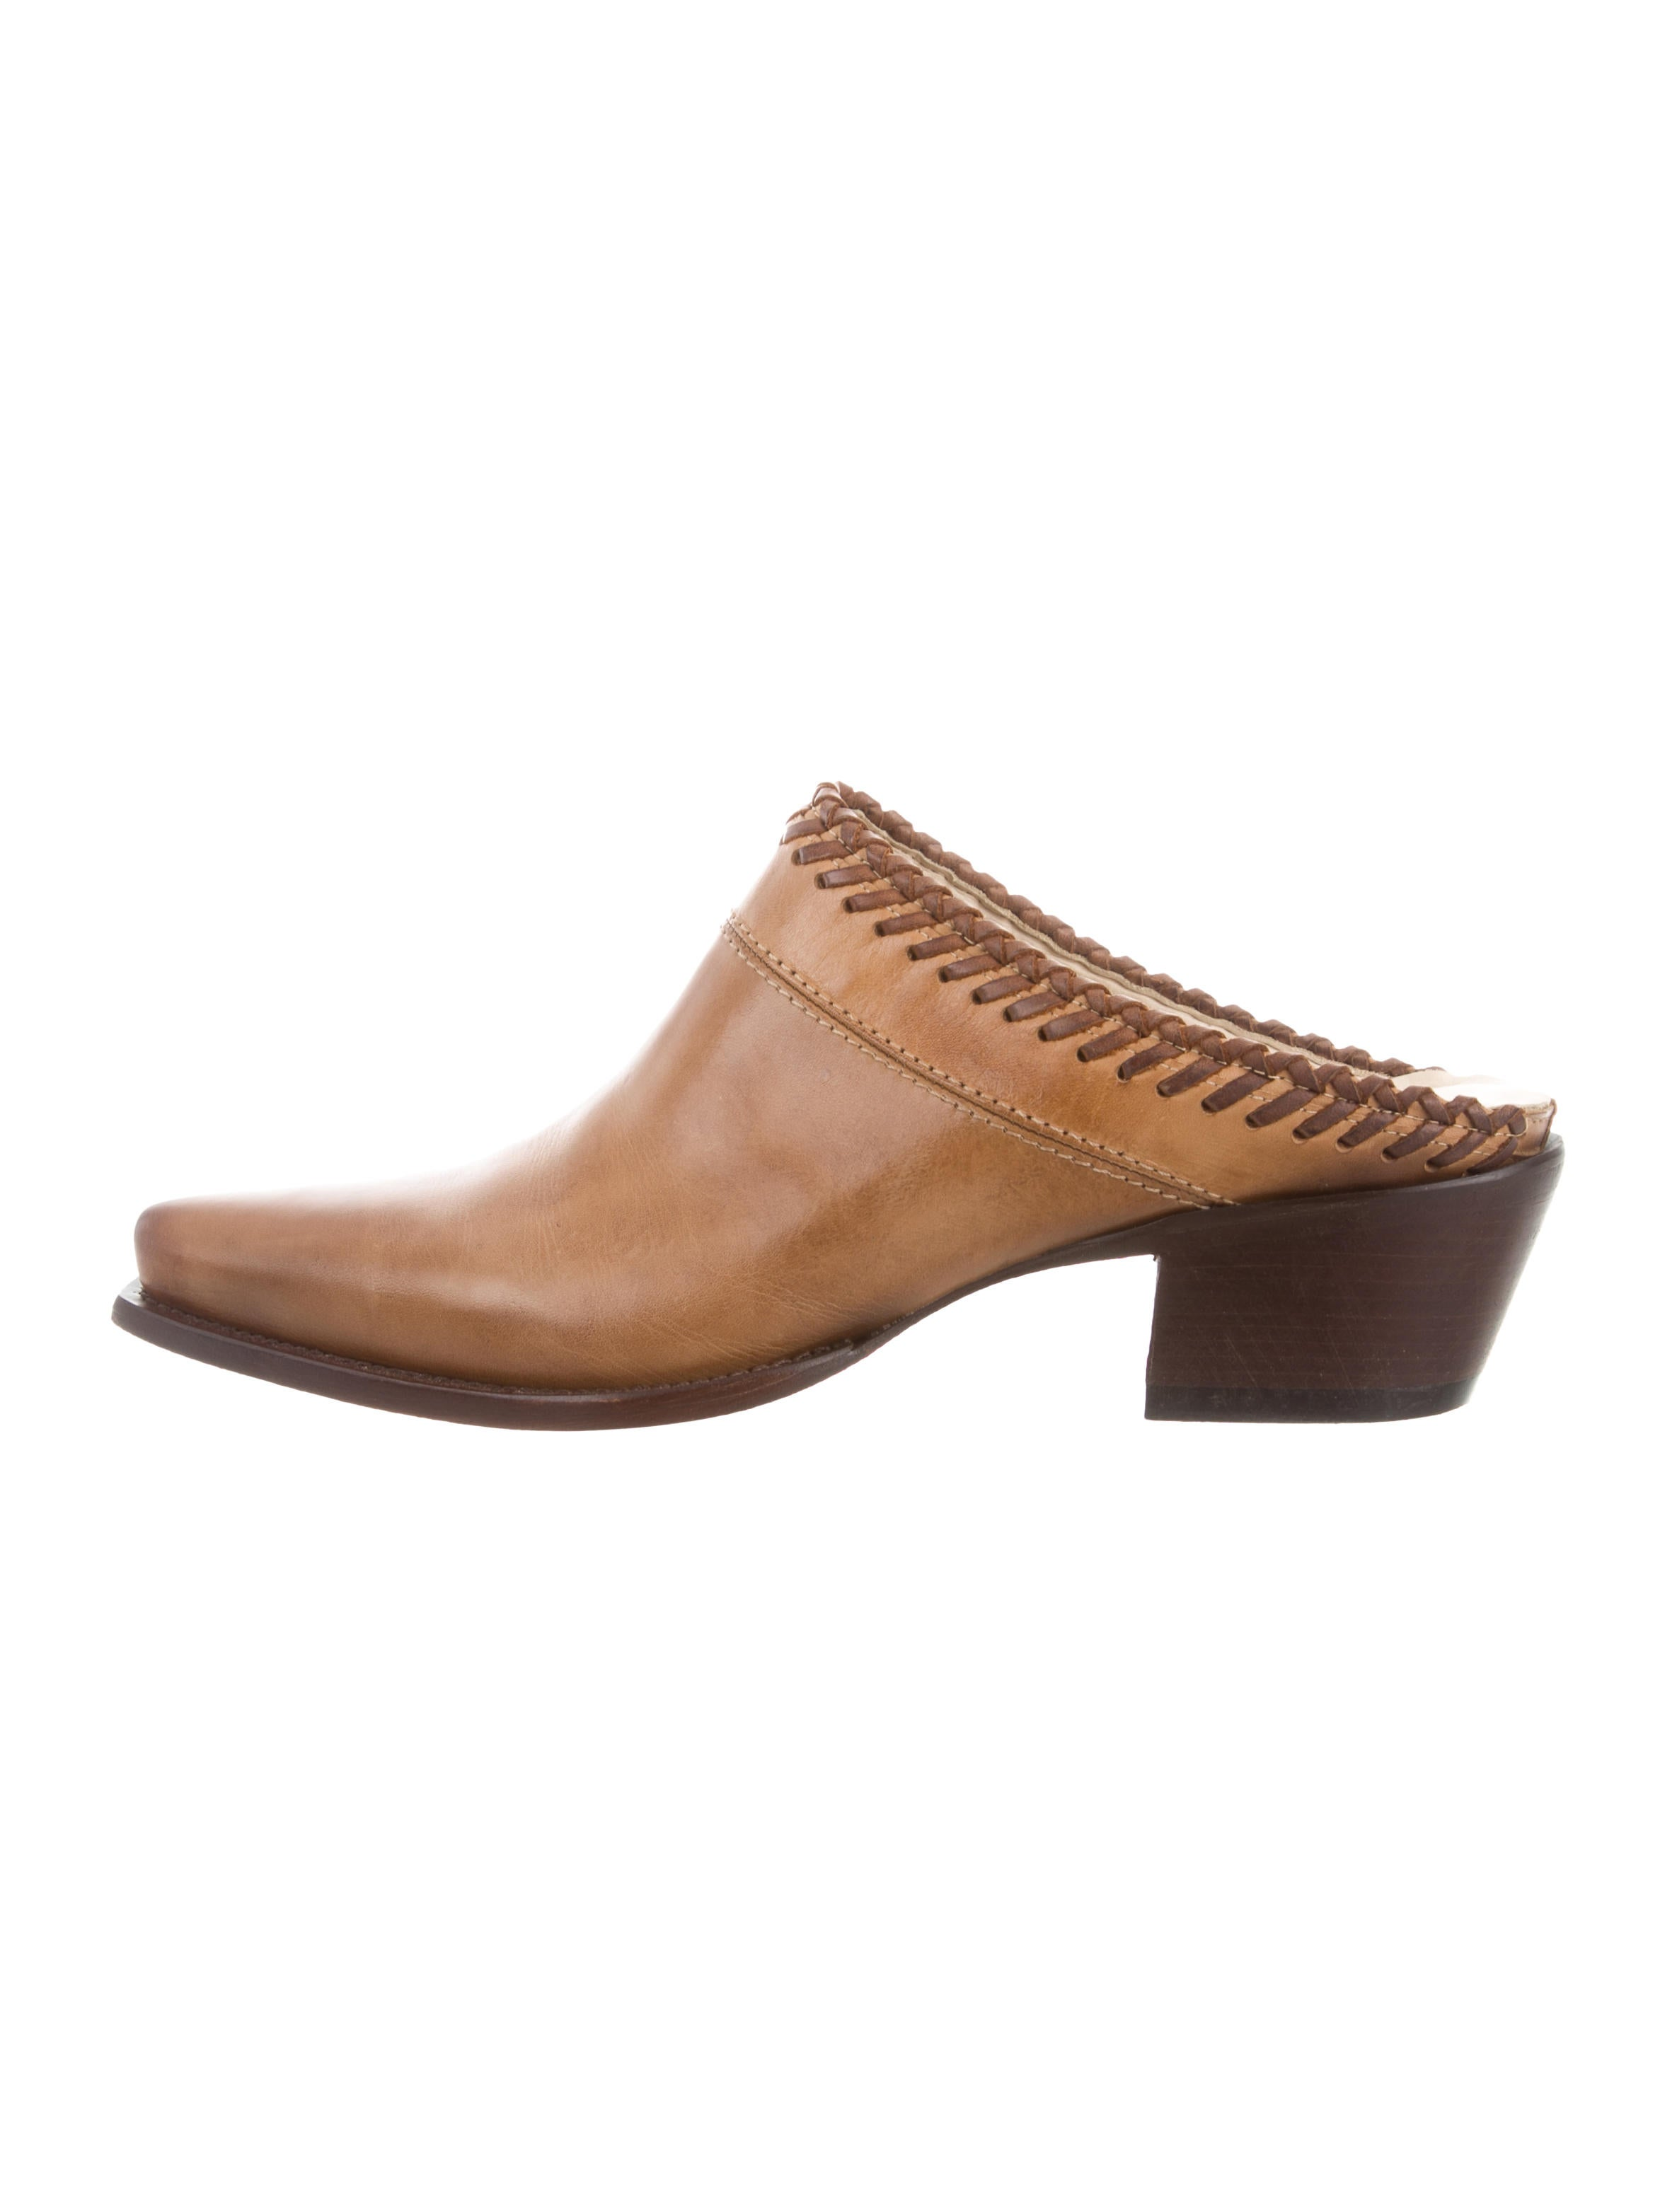 clearance low shipping Lucchese Leather Pointed-Toe Mules w/ Tags low cost cheap online best sale sale online limited edition cheap price 100% original online URelHWlv